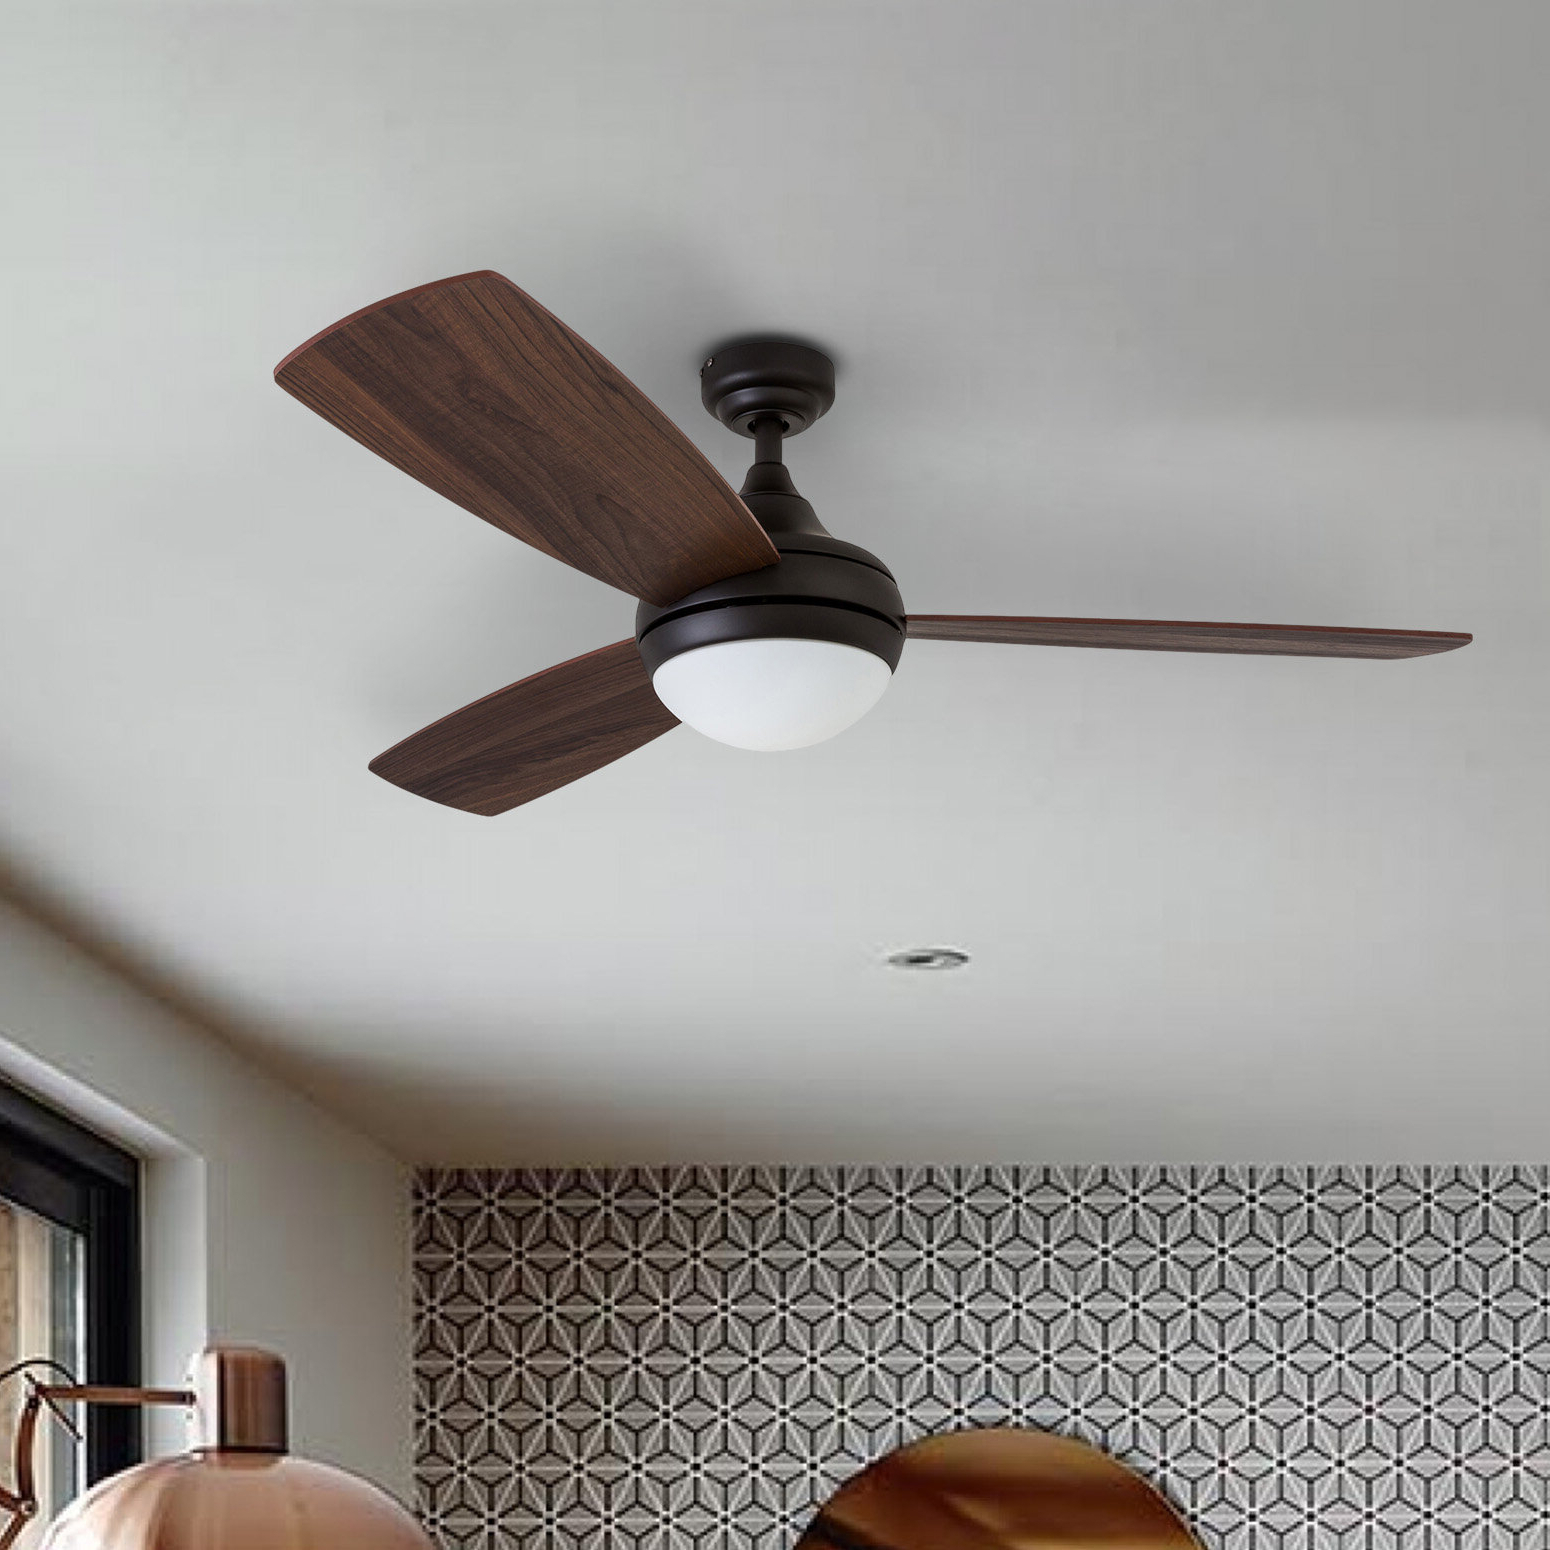 "52"" Alyce 3 Blade Led Ceiling Fan With Remote Control In Best And Newest Heskett 3 Blade Led Ceiling Fans (View 4 of 20)"